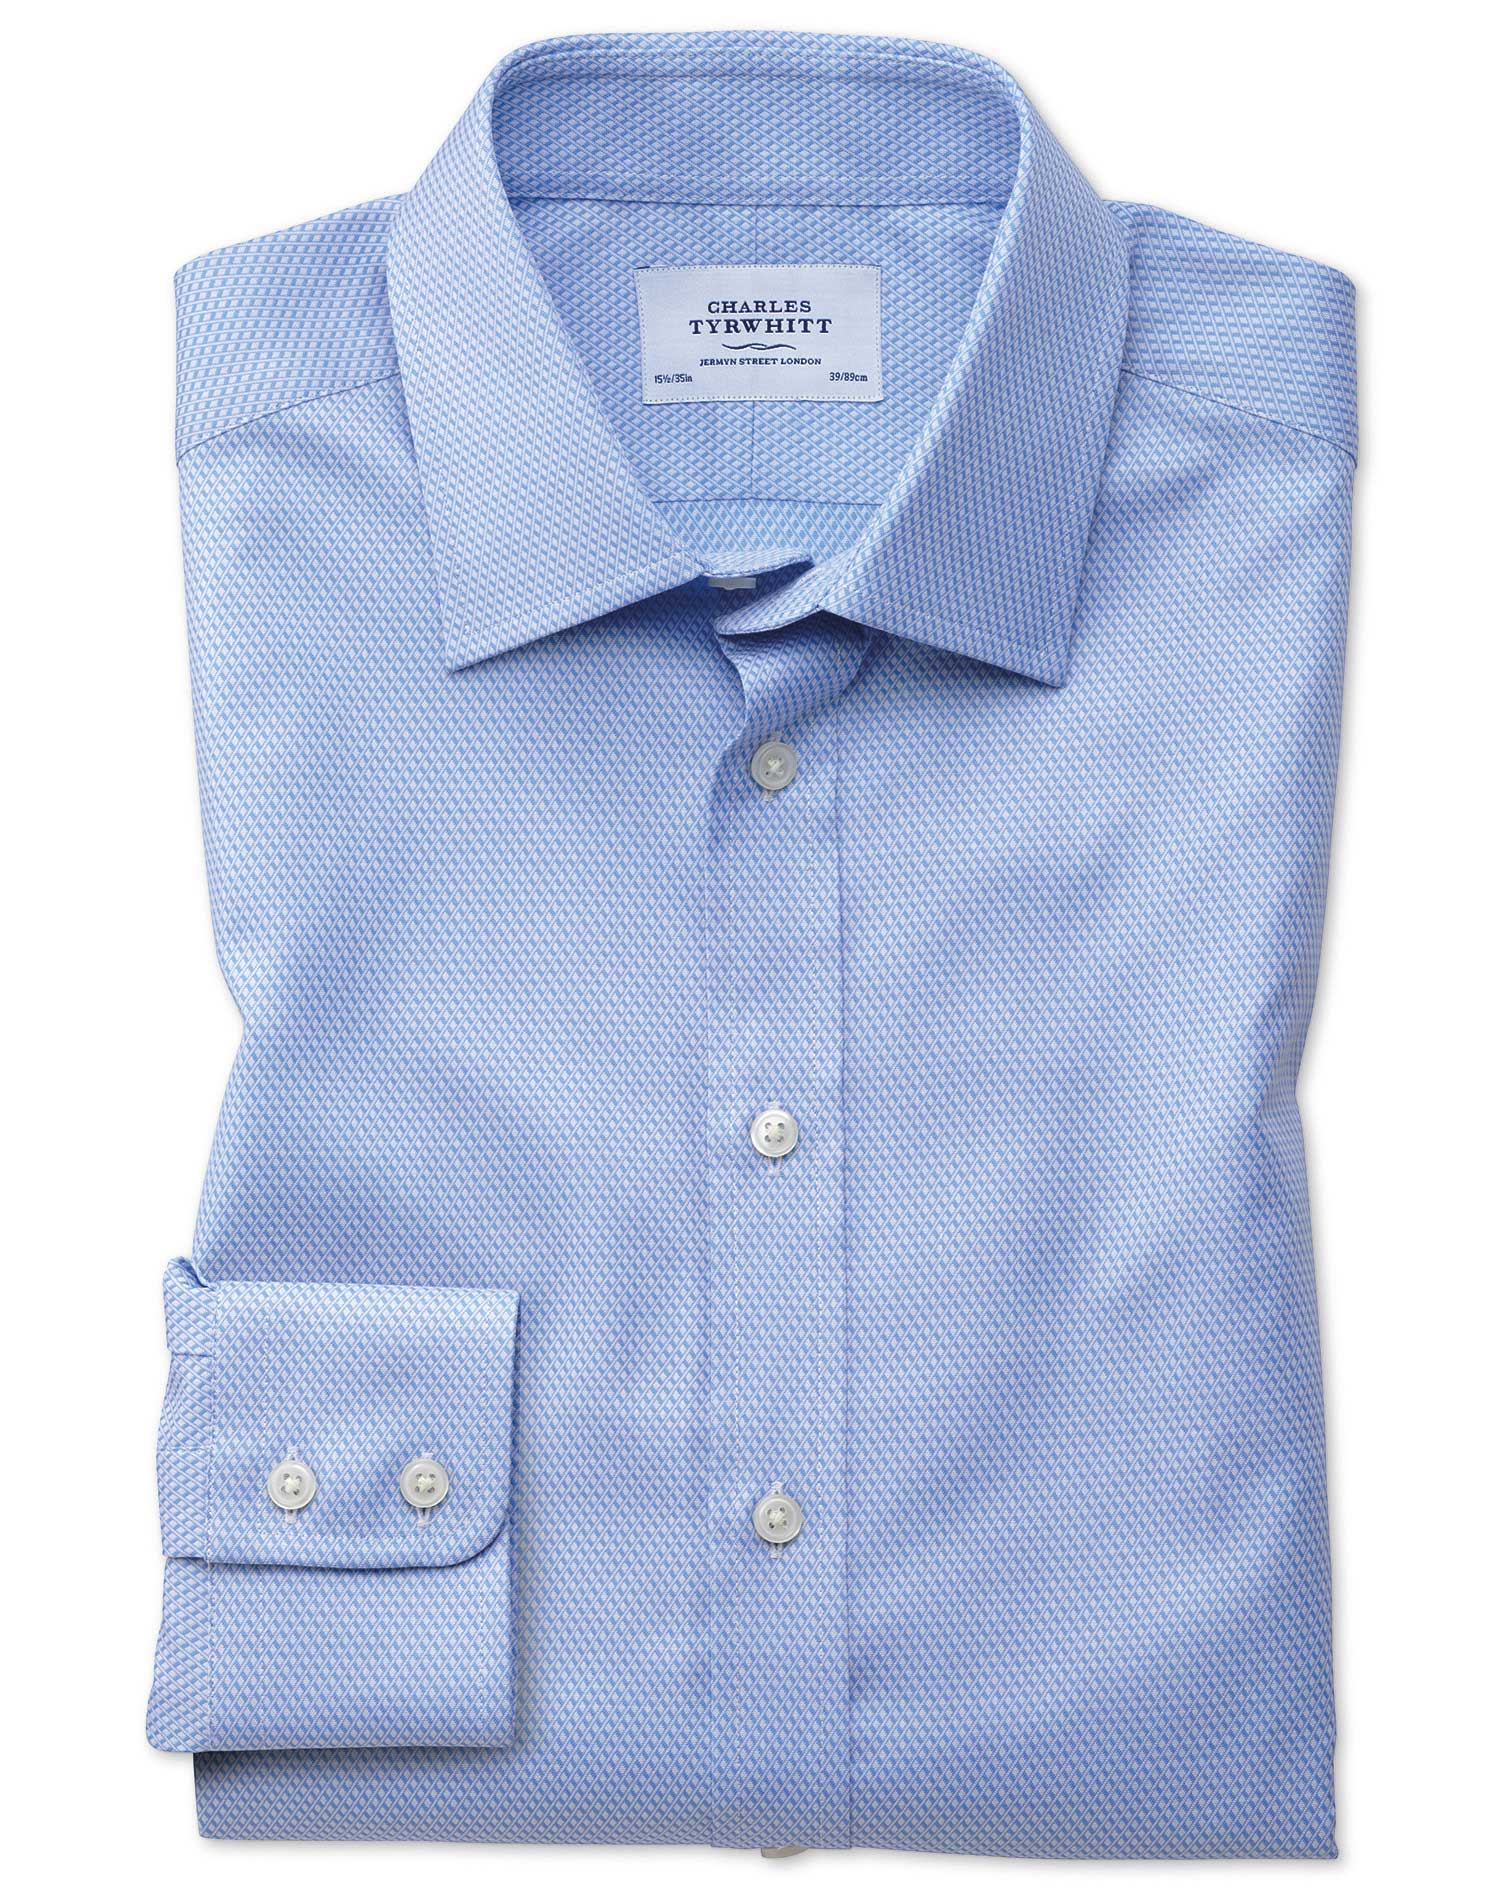 Classic Fit Egyptian Cotton Diamond Pattern Sky Blue Formal Shirt Single Cuff Size 16/35 by Charles